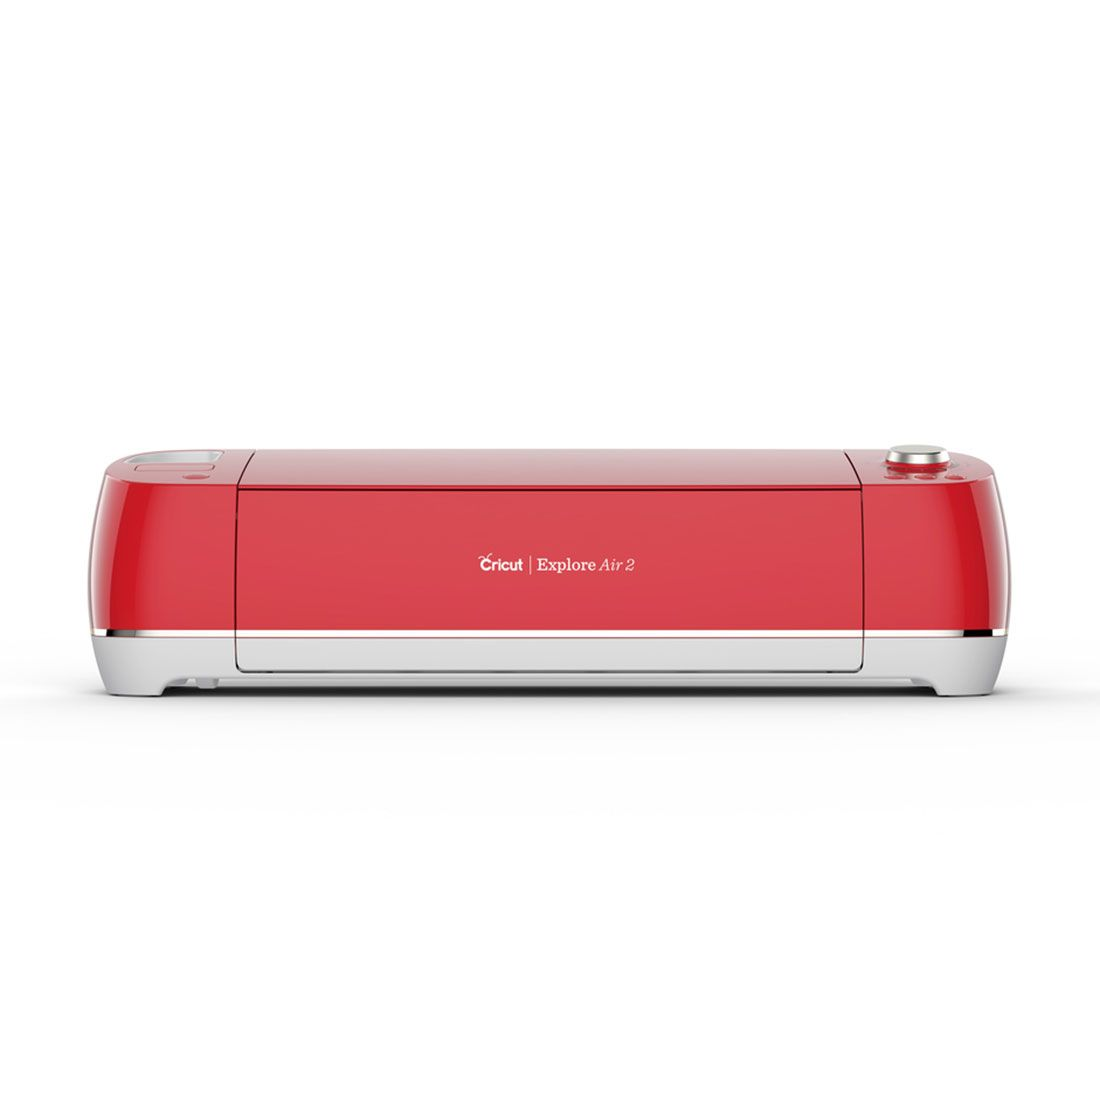 Best Value Cricut Machine: Cricut Explore Air 2